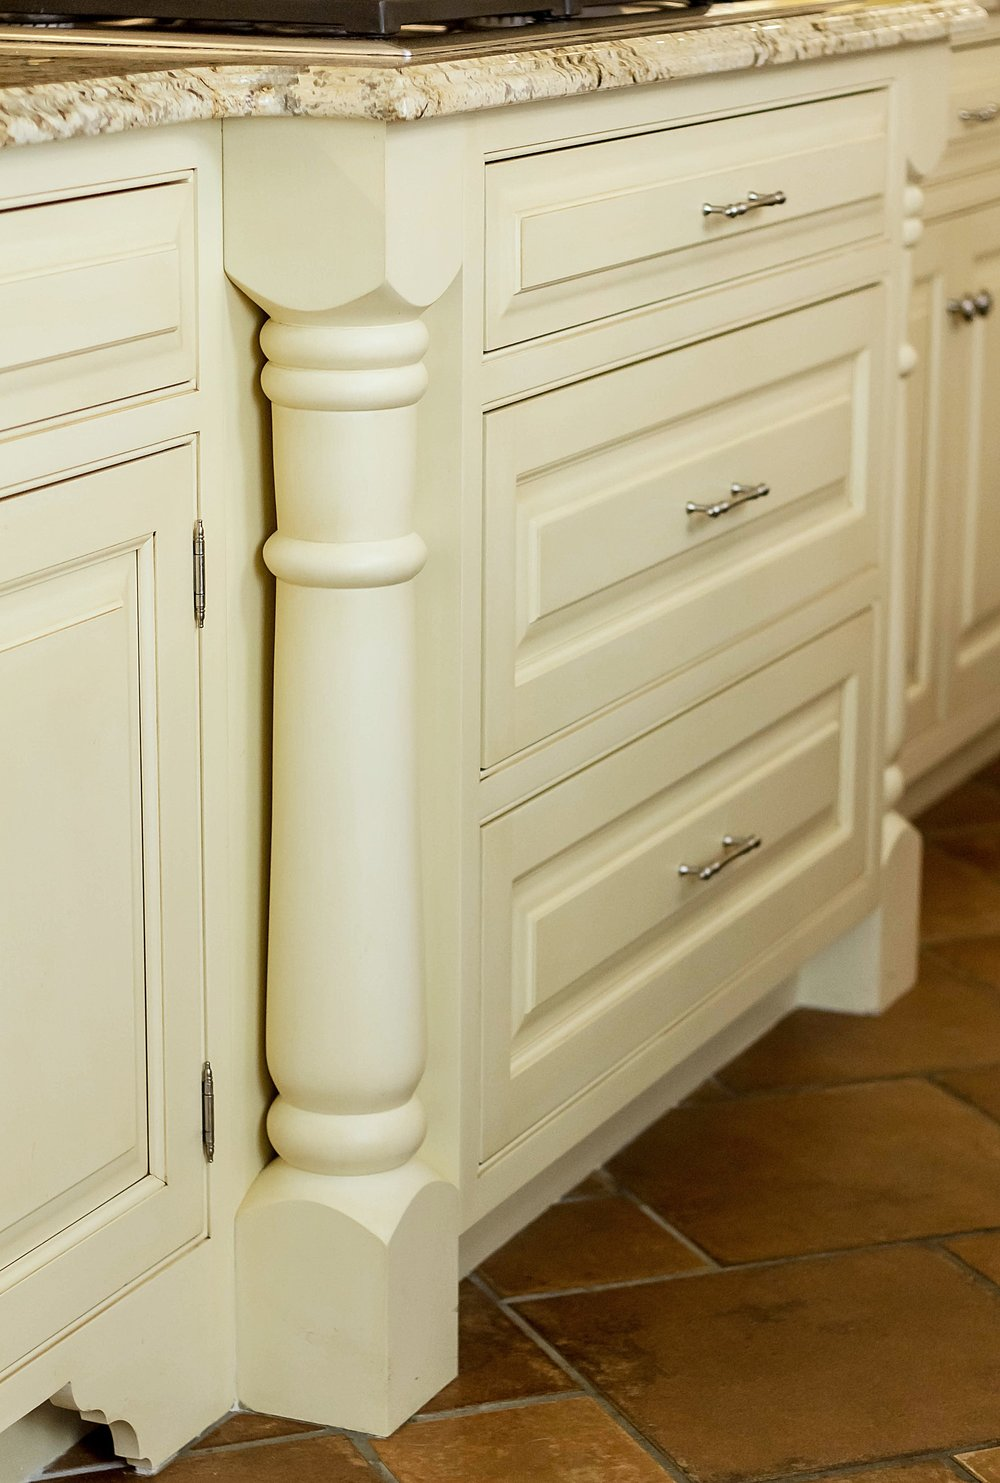 Traditional style kitchen cabinets with custom molding